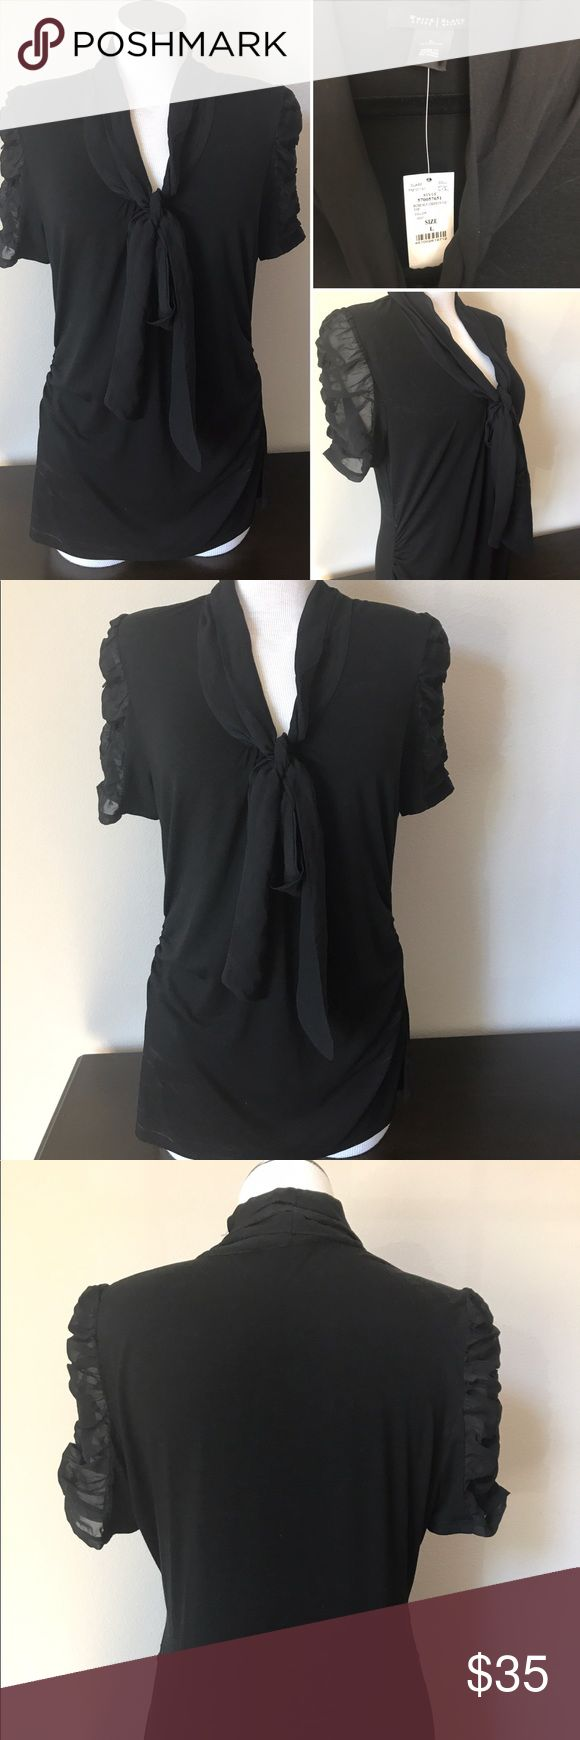 Mixed Media Blouse Short sleeve mixed Media Blouse with tie front. Rouched shaping on sides, shear sleeves.  More stylish than basic black White House Black Market Tops Blouses